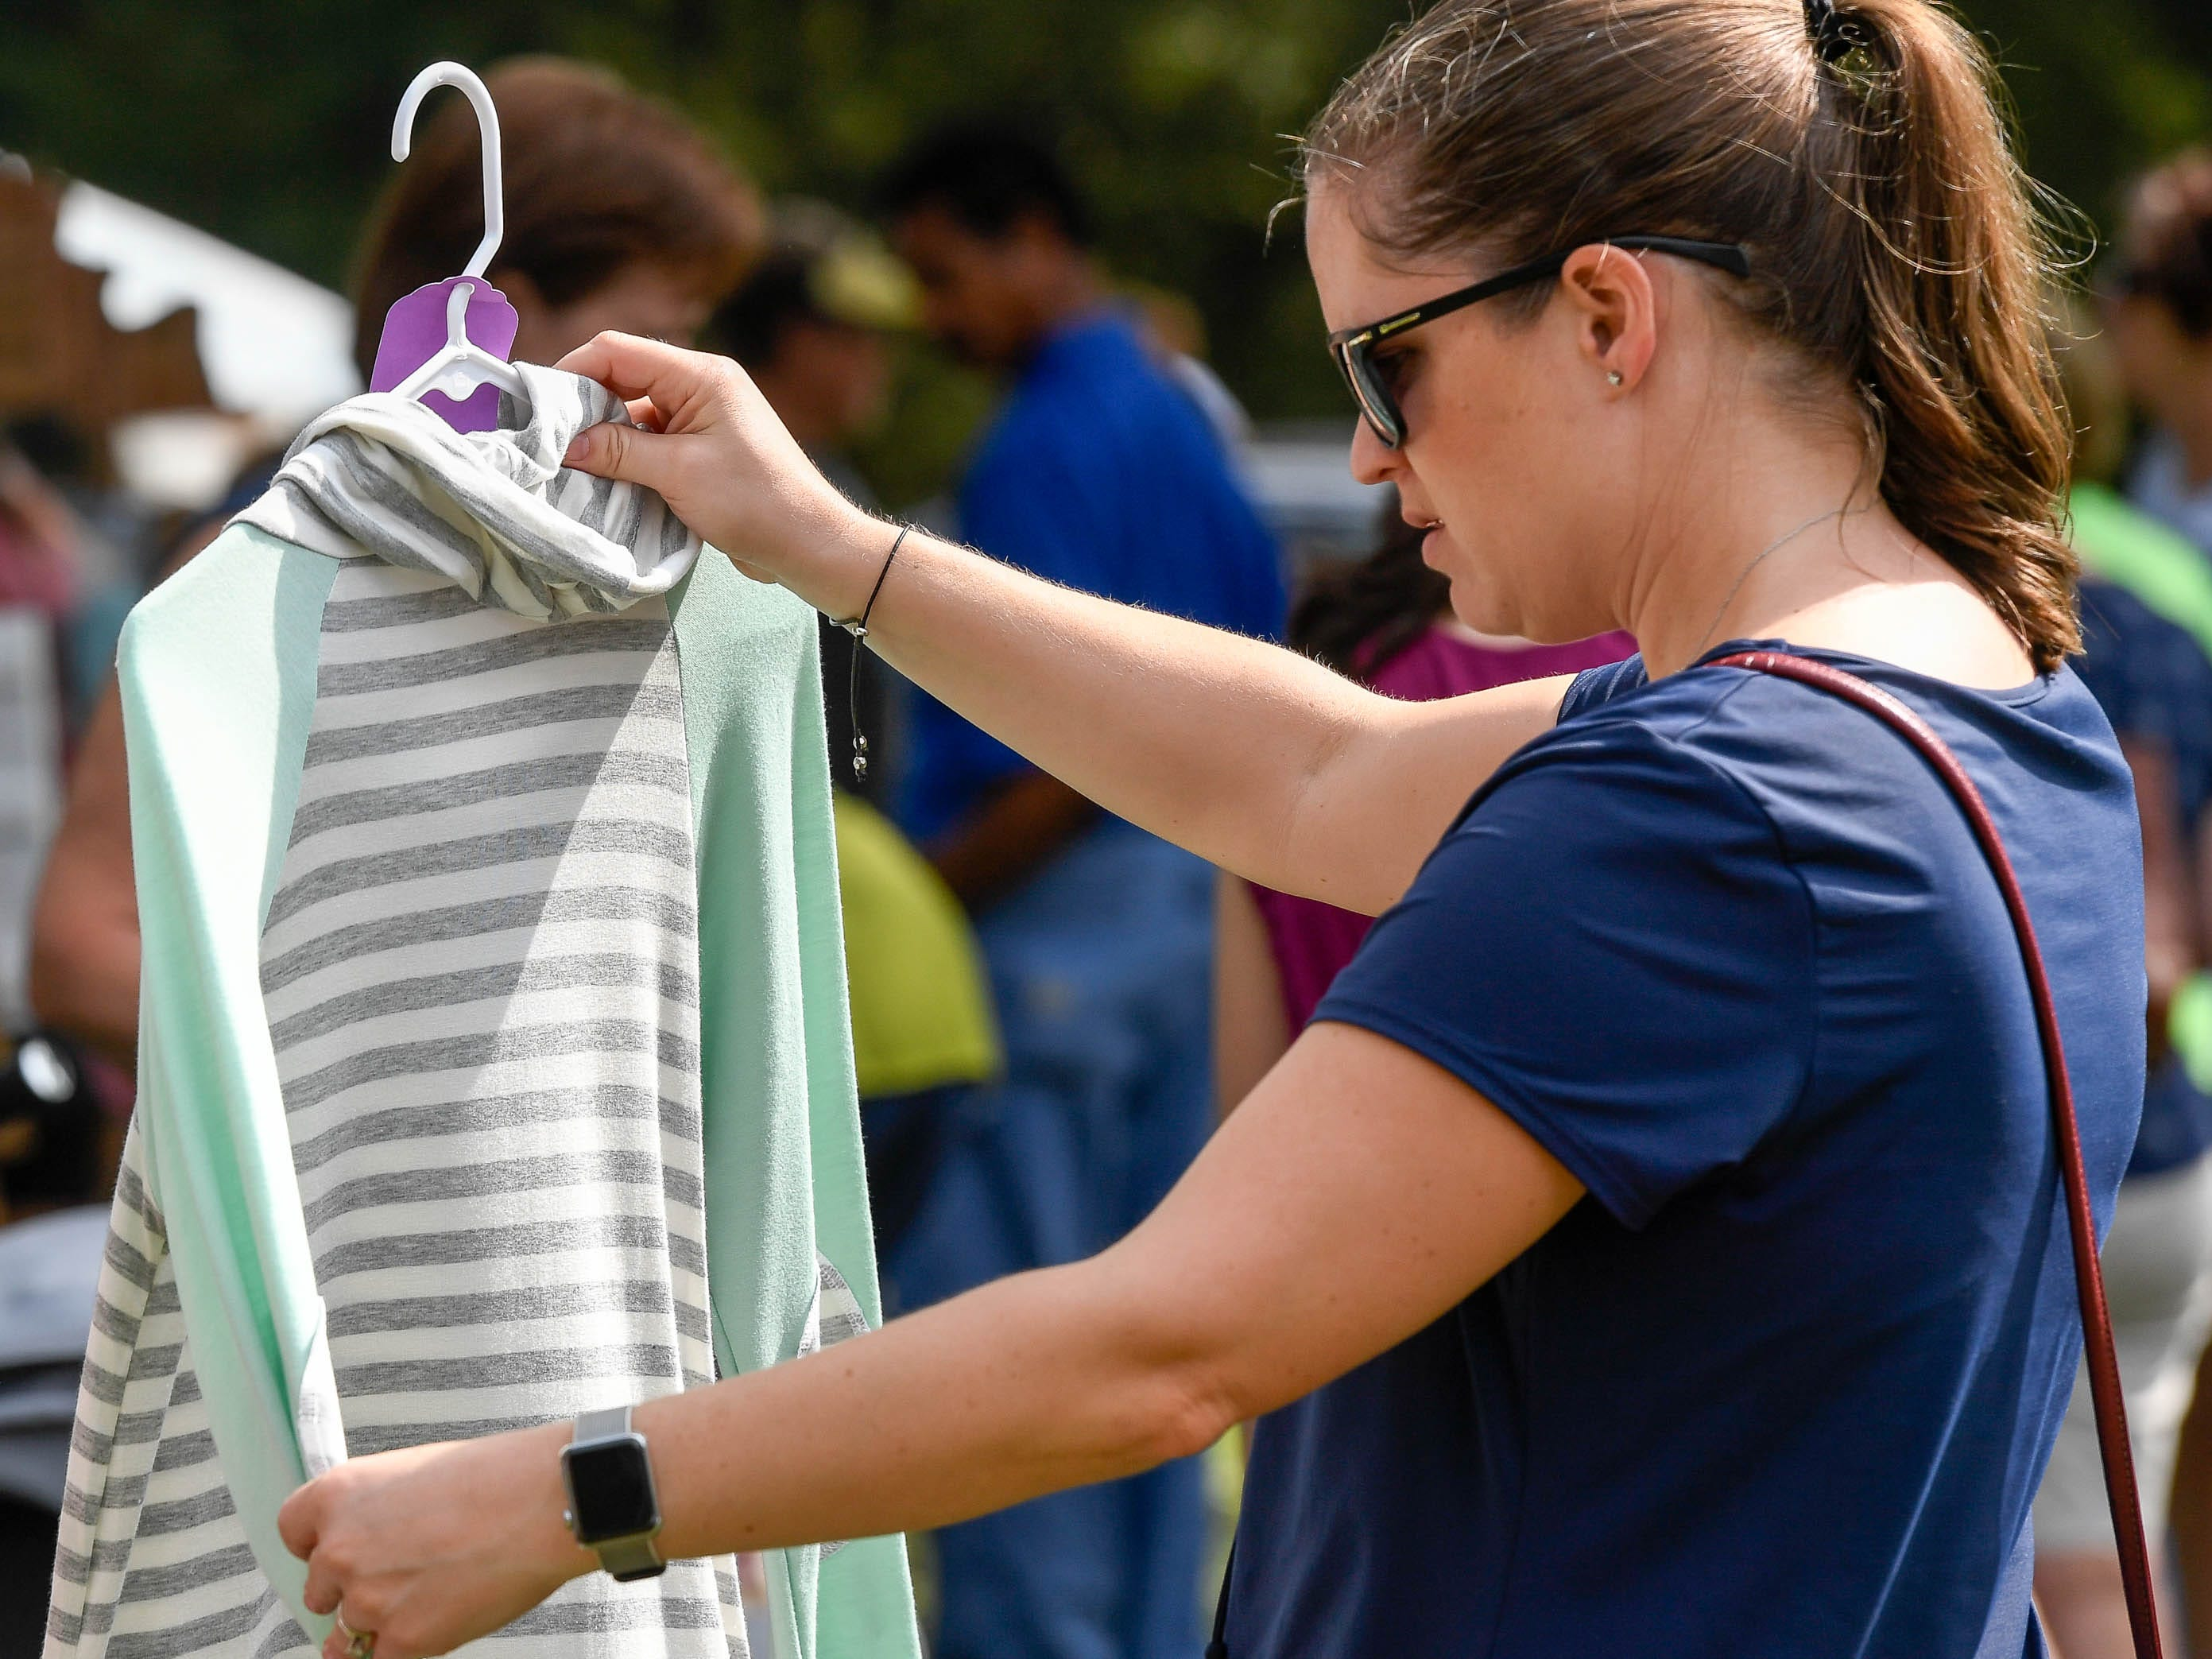 Holly Gavin, Henderson, browses through some clothing items at the Henderson Lions Arts and Crafts festival held at Audubon State Park Saturday, October 6, 2018.